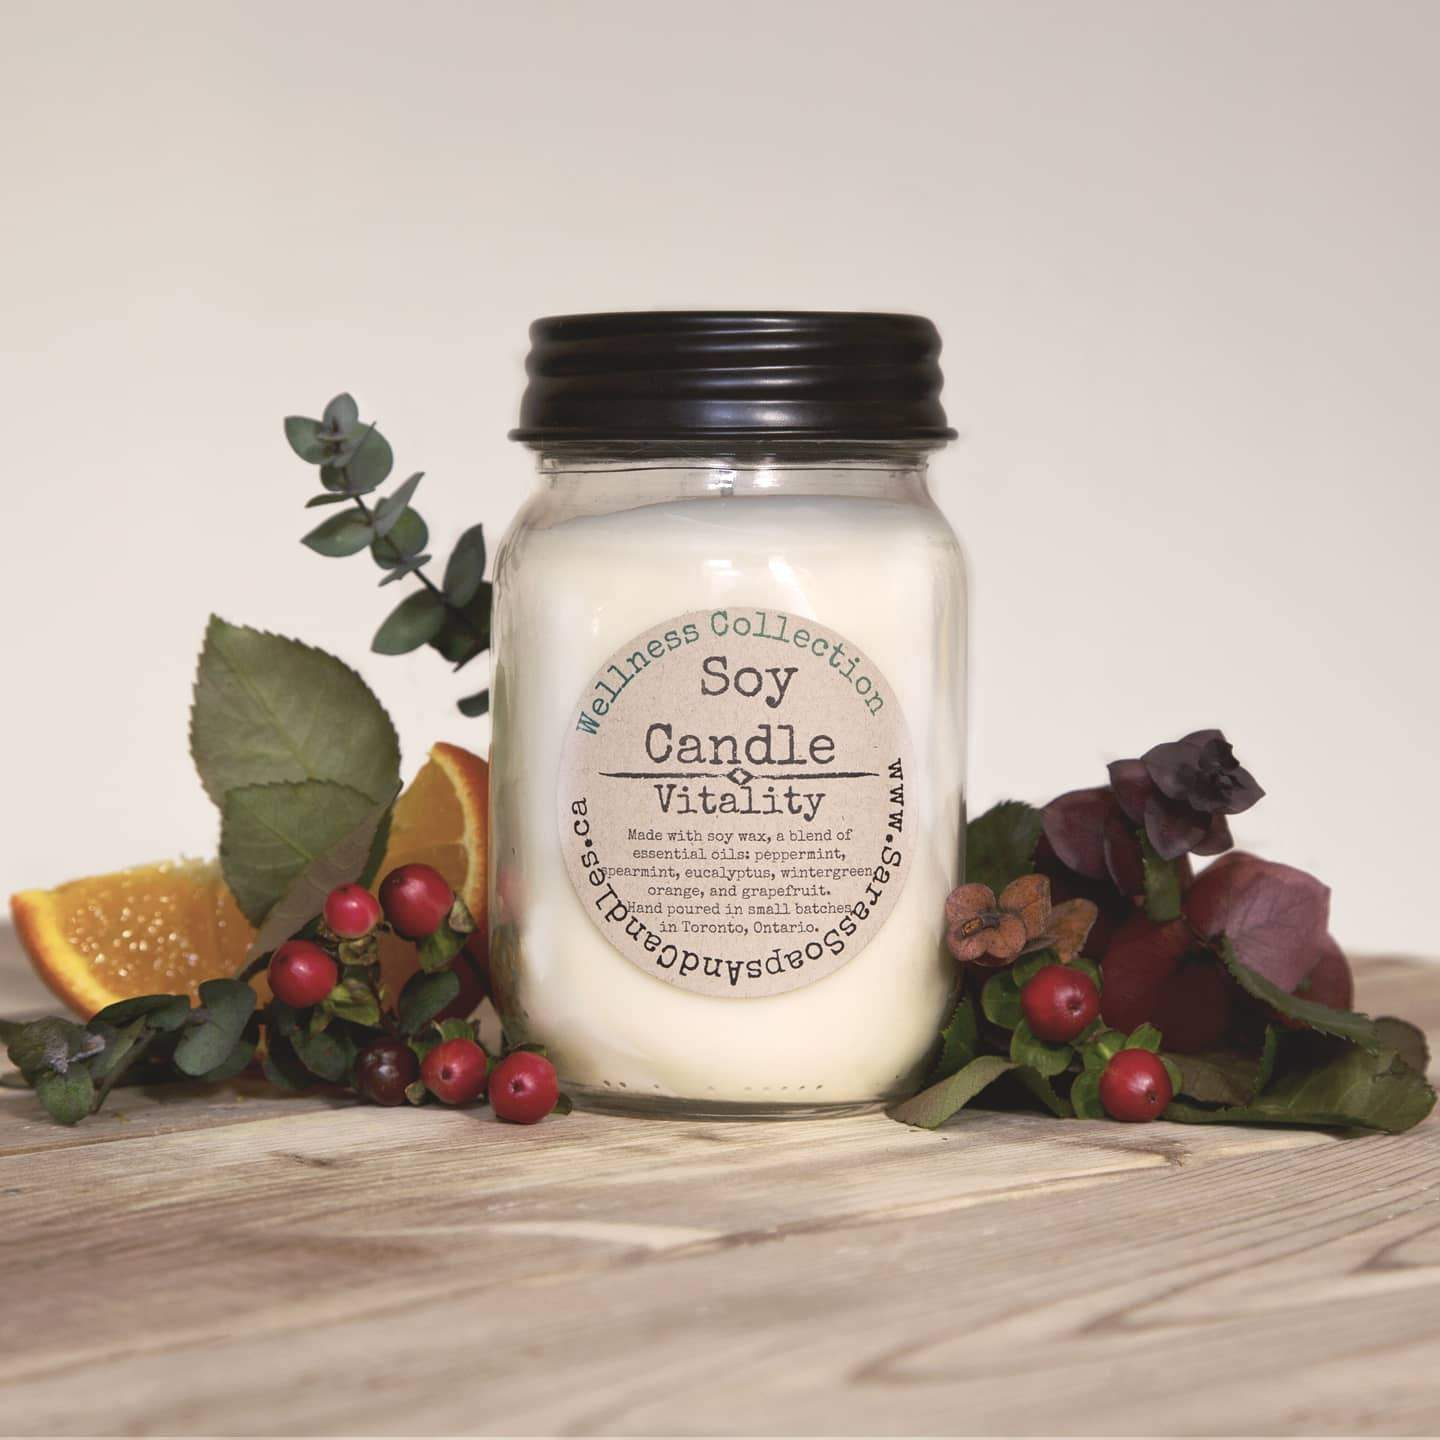 Vitality Soy Candle